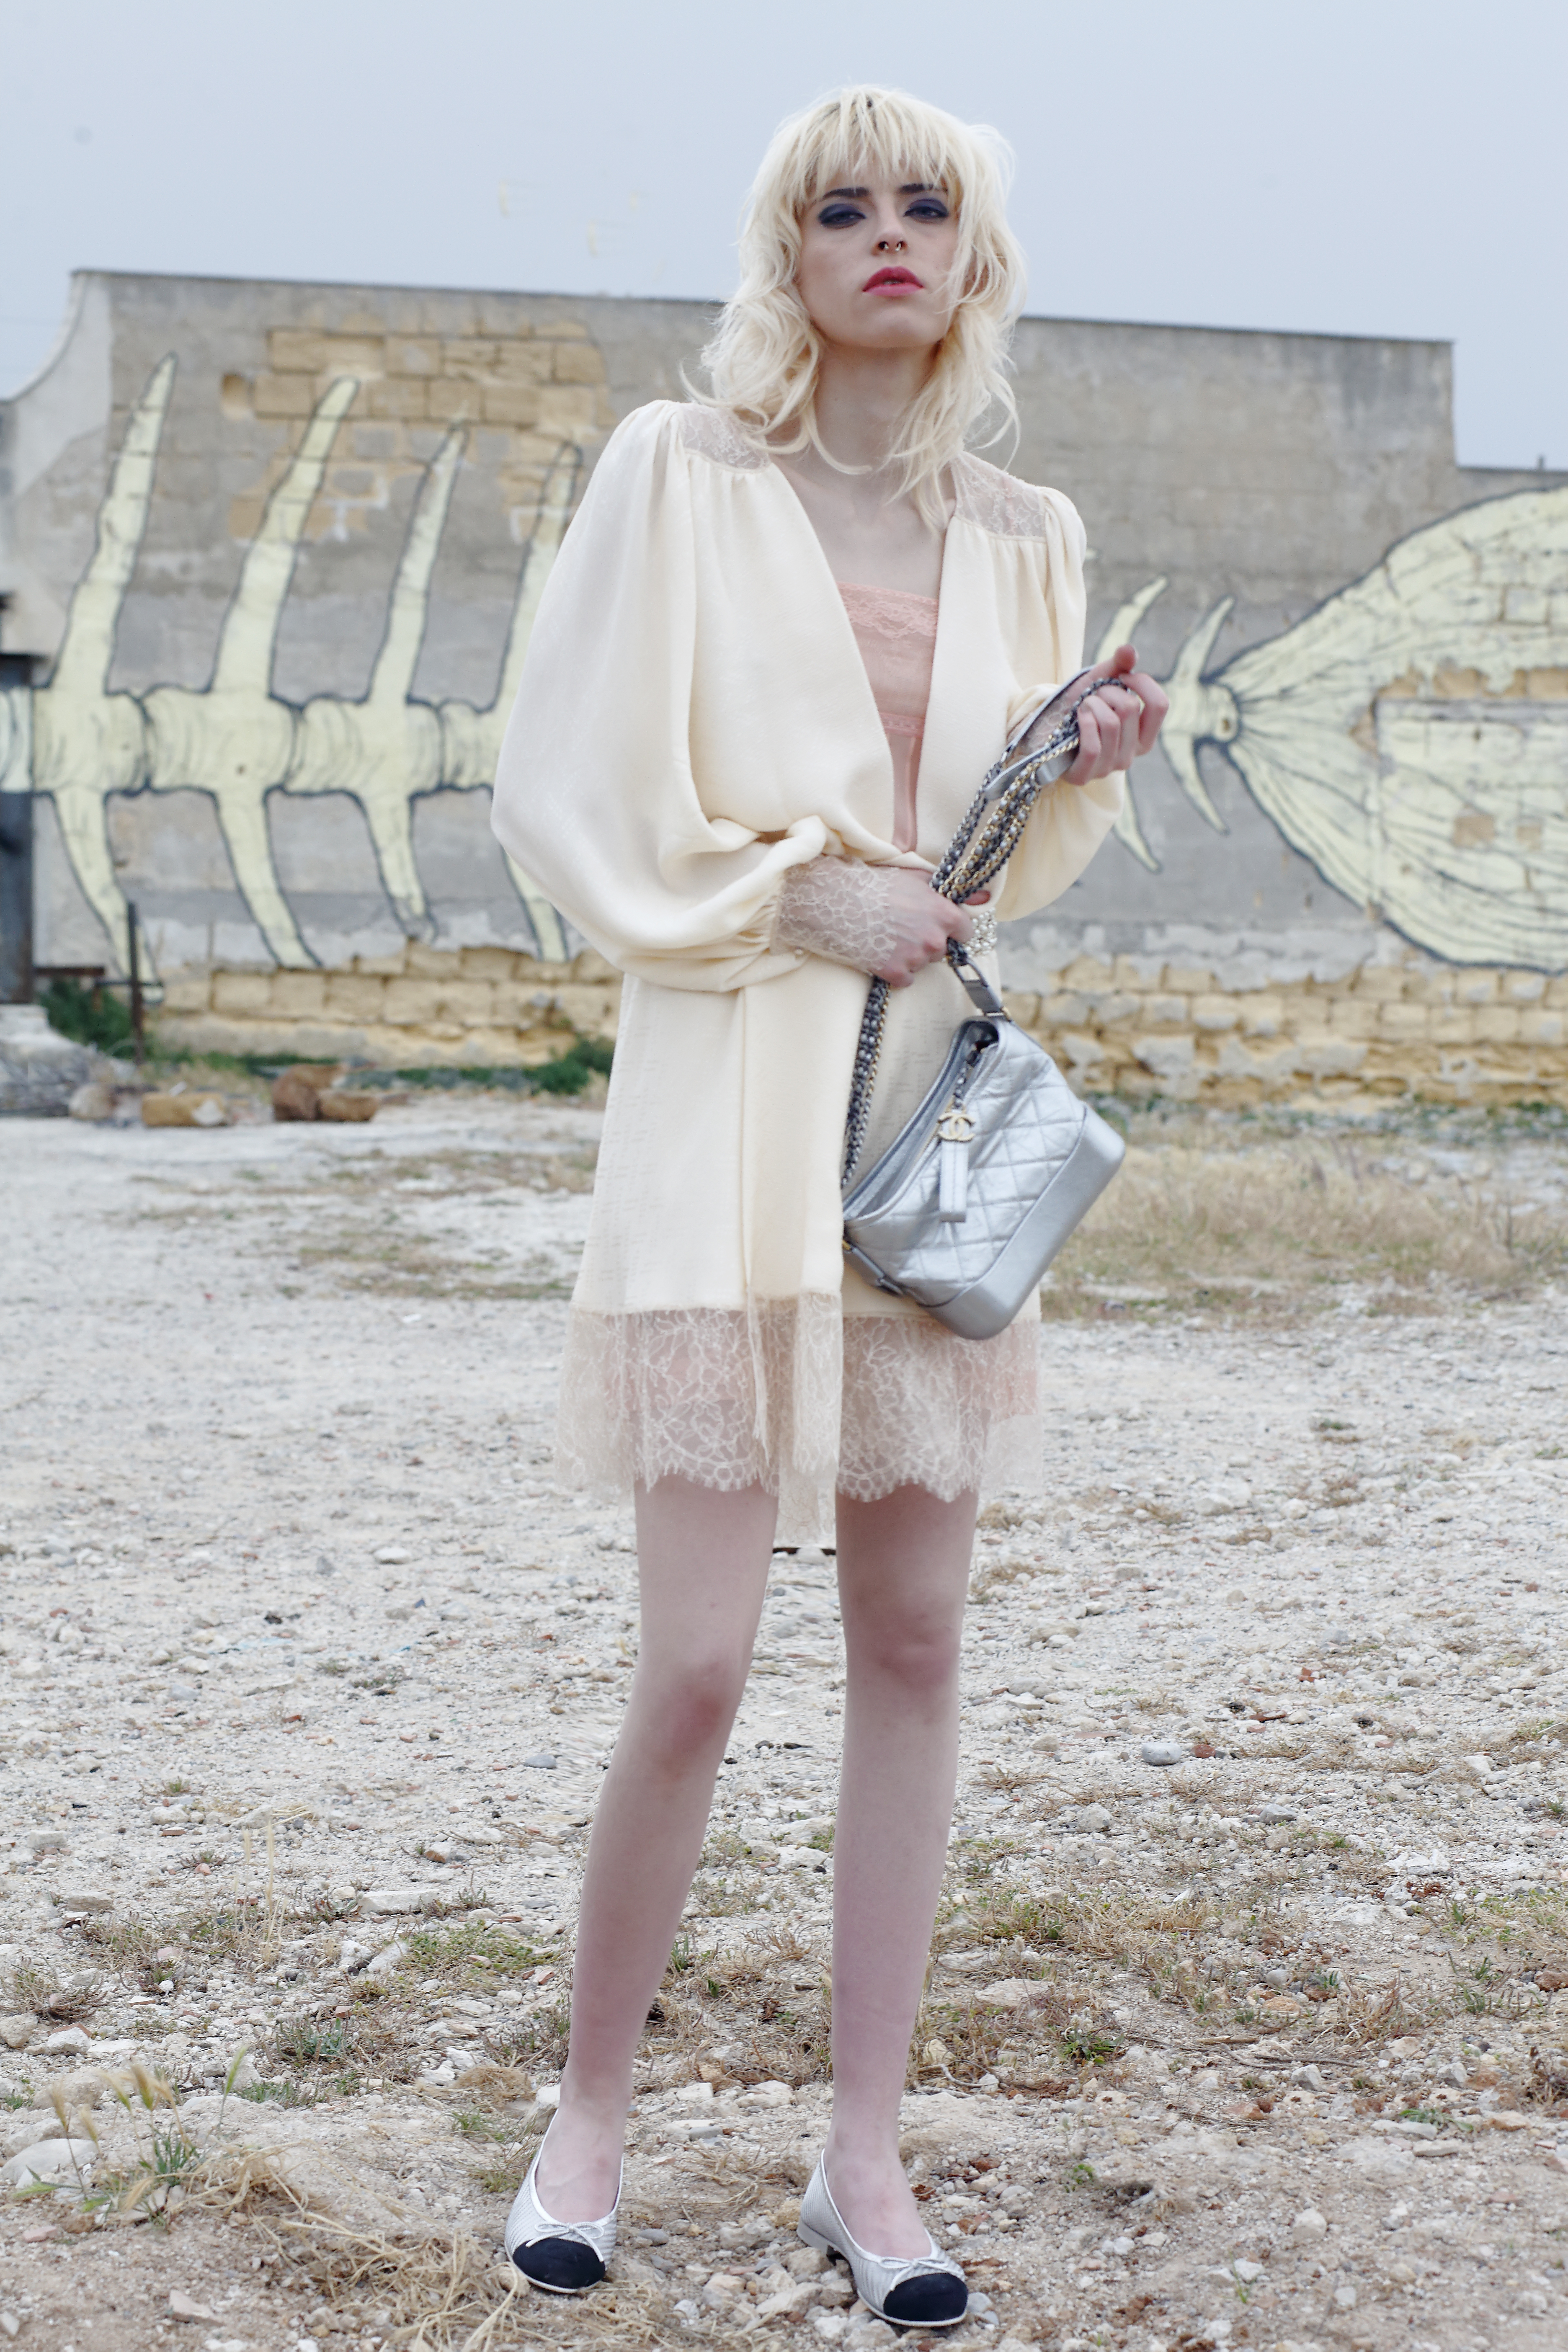 bd8818db49397c Coat silk jacquard crèpon beige, dress crepe geogette pale pink, small hobo  bag Gabrielle in total silver, flats pvc and grosgrain in silver and black,  ...